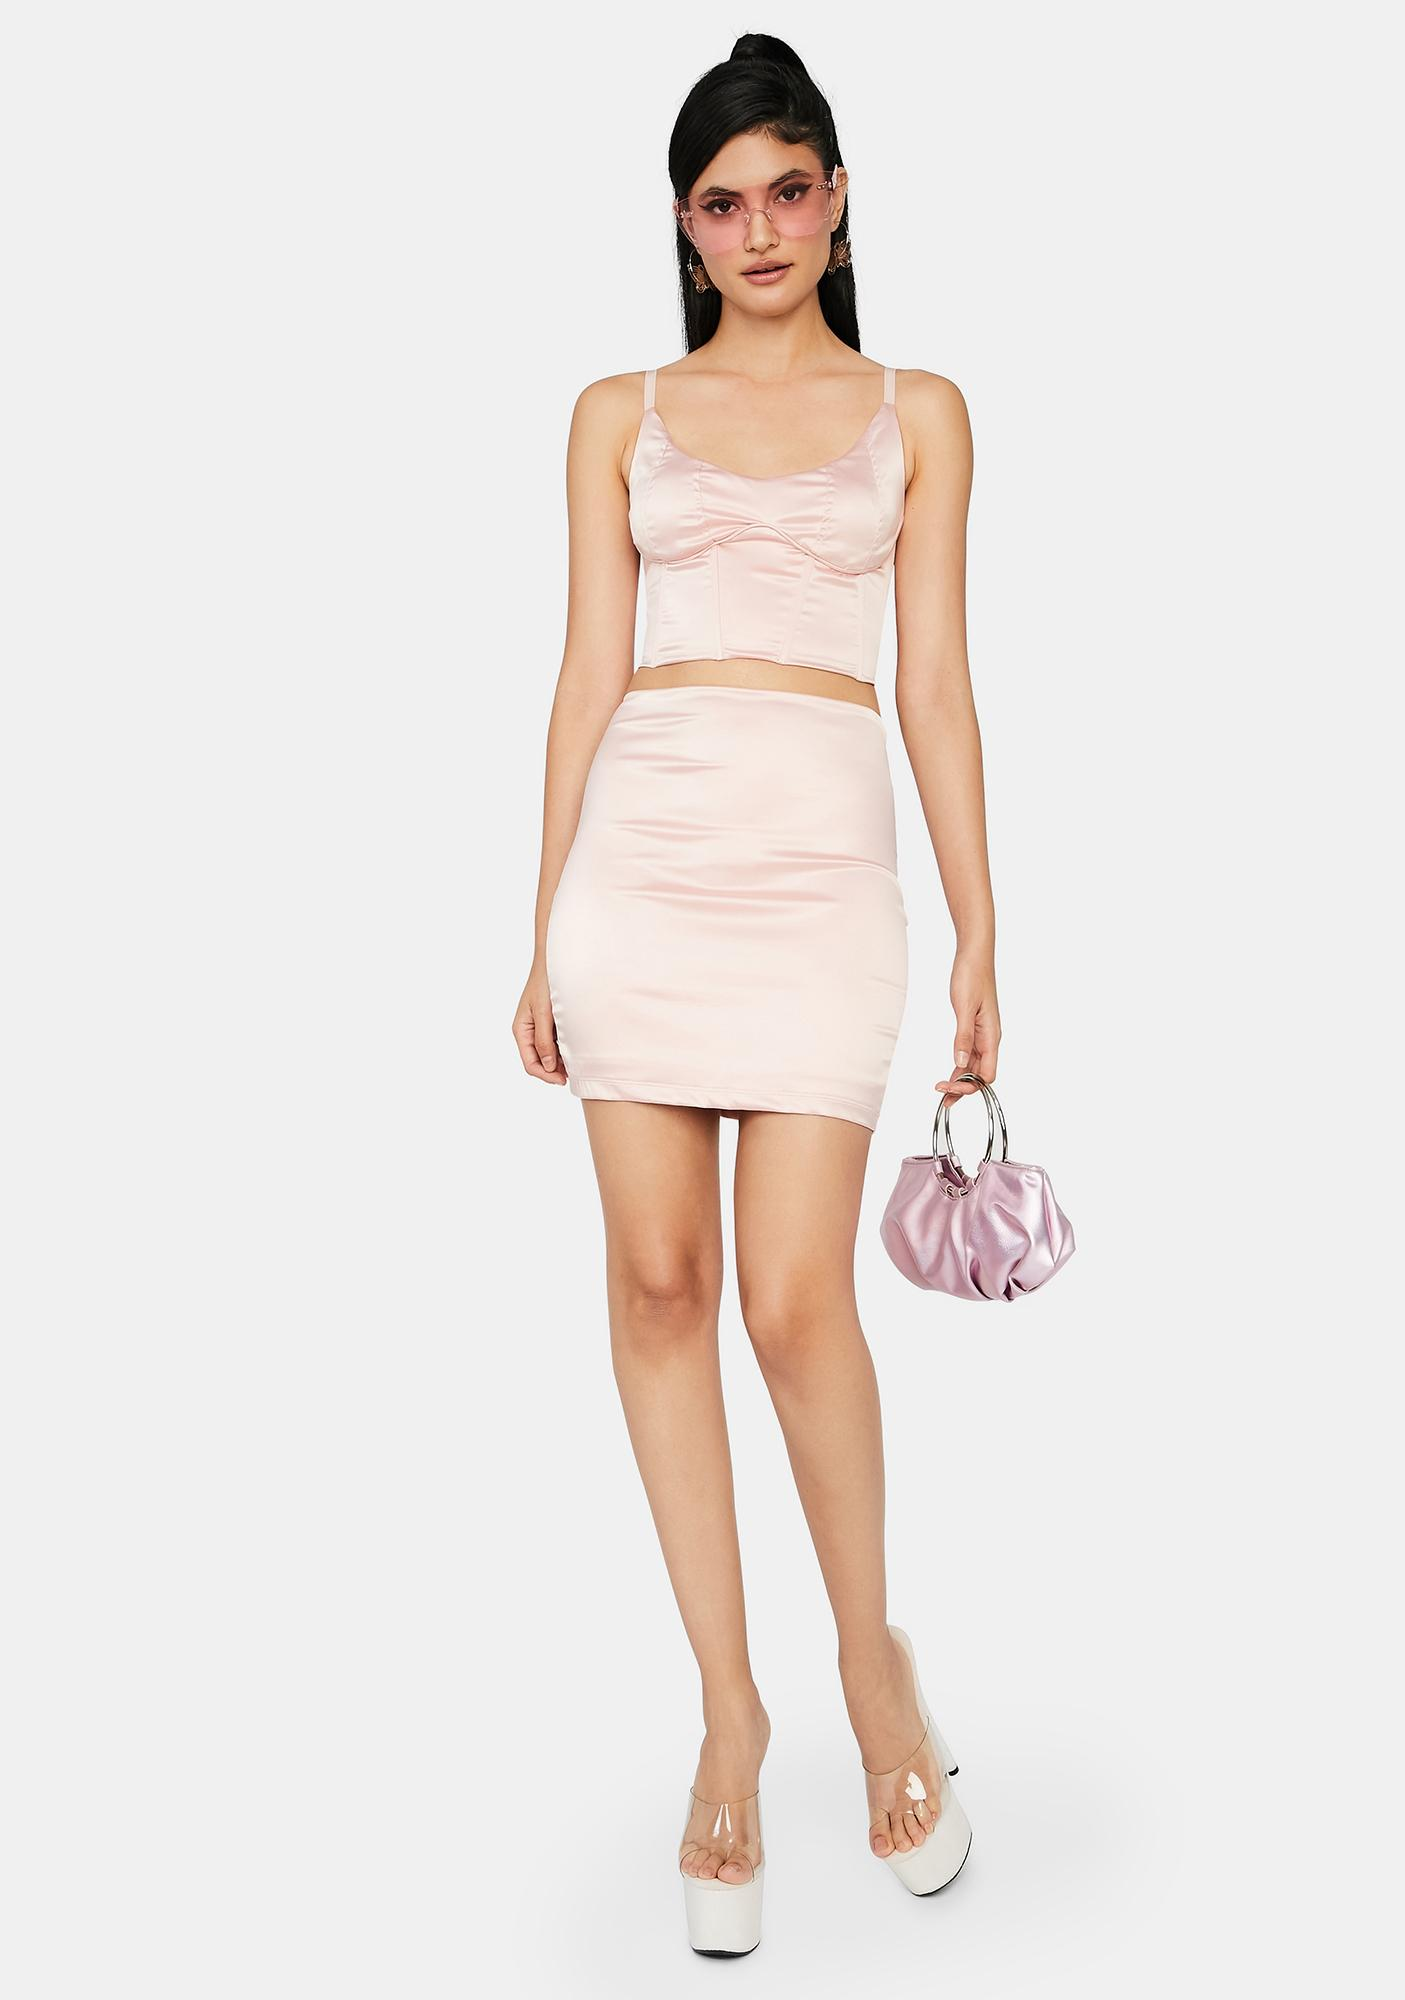 Blush Talk Is Cheap Satin Set